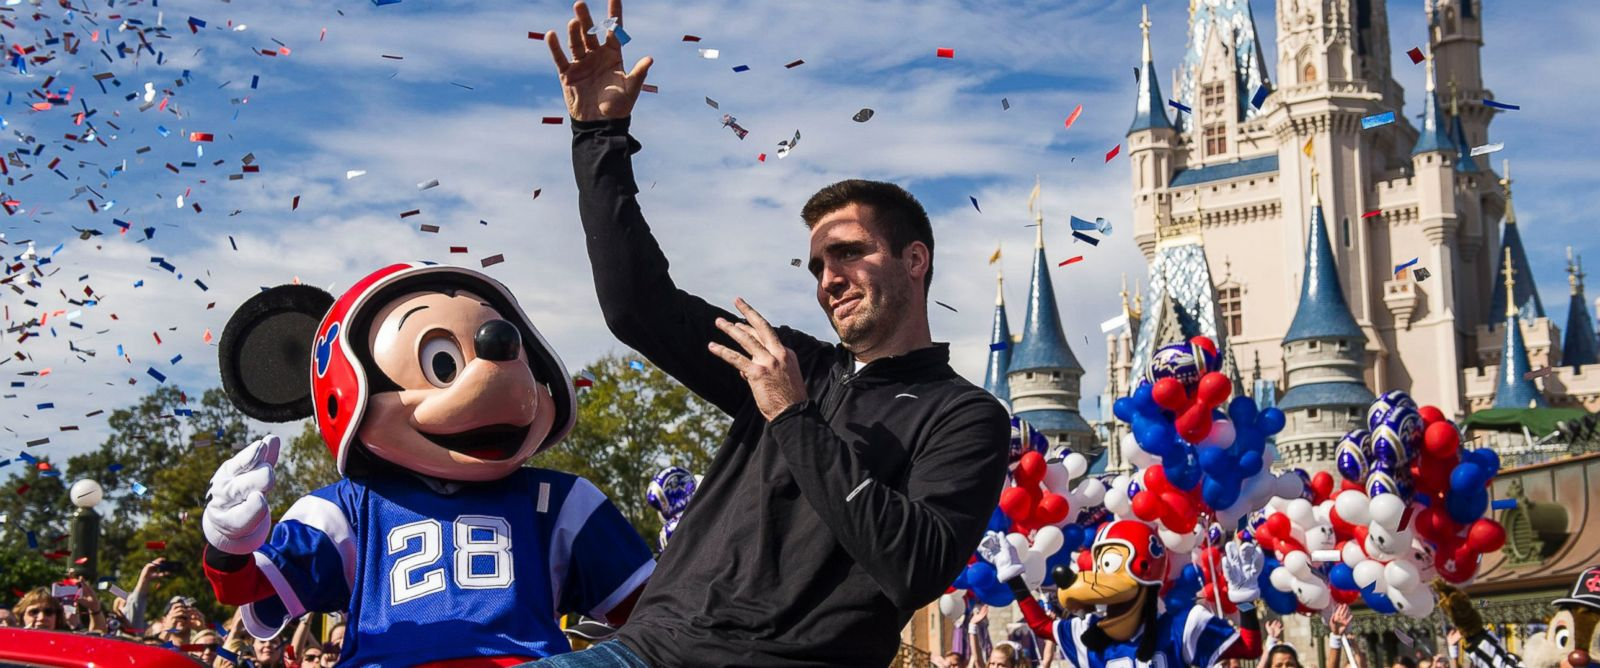 PHOTO: Super Bowl XLVII MVP Joe Flacco rides with Mickey Mouse in a parade through the Magic Kingdom at Walt Disney World Resort, Feb. 4, 2013 in Lake Buena Vista, Fla.